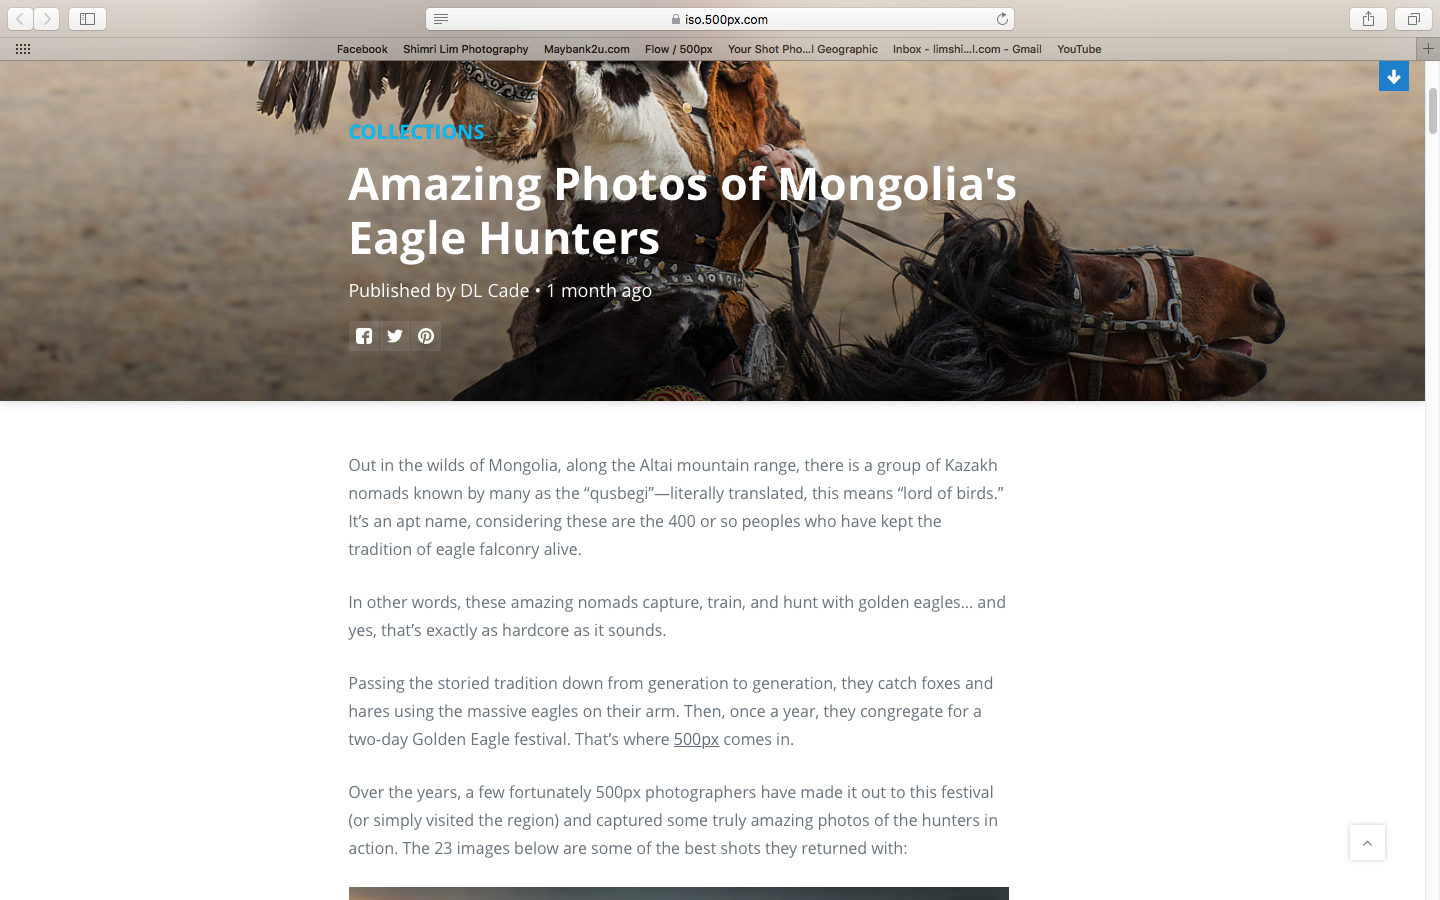 https://iso.500px.com/amazing-photos-of-mongolias-eagle-hunters/